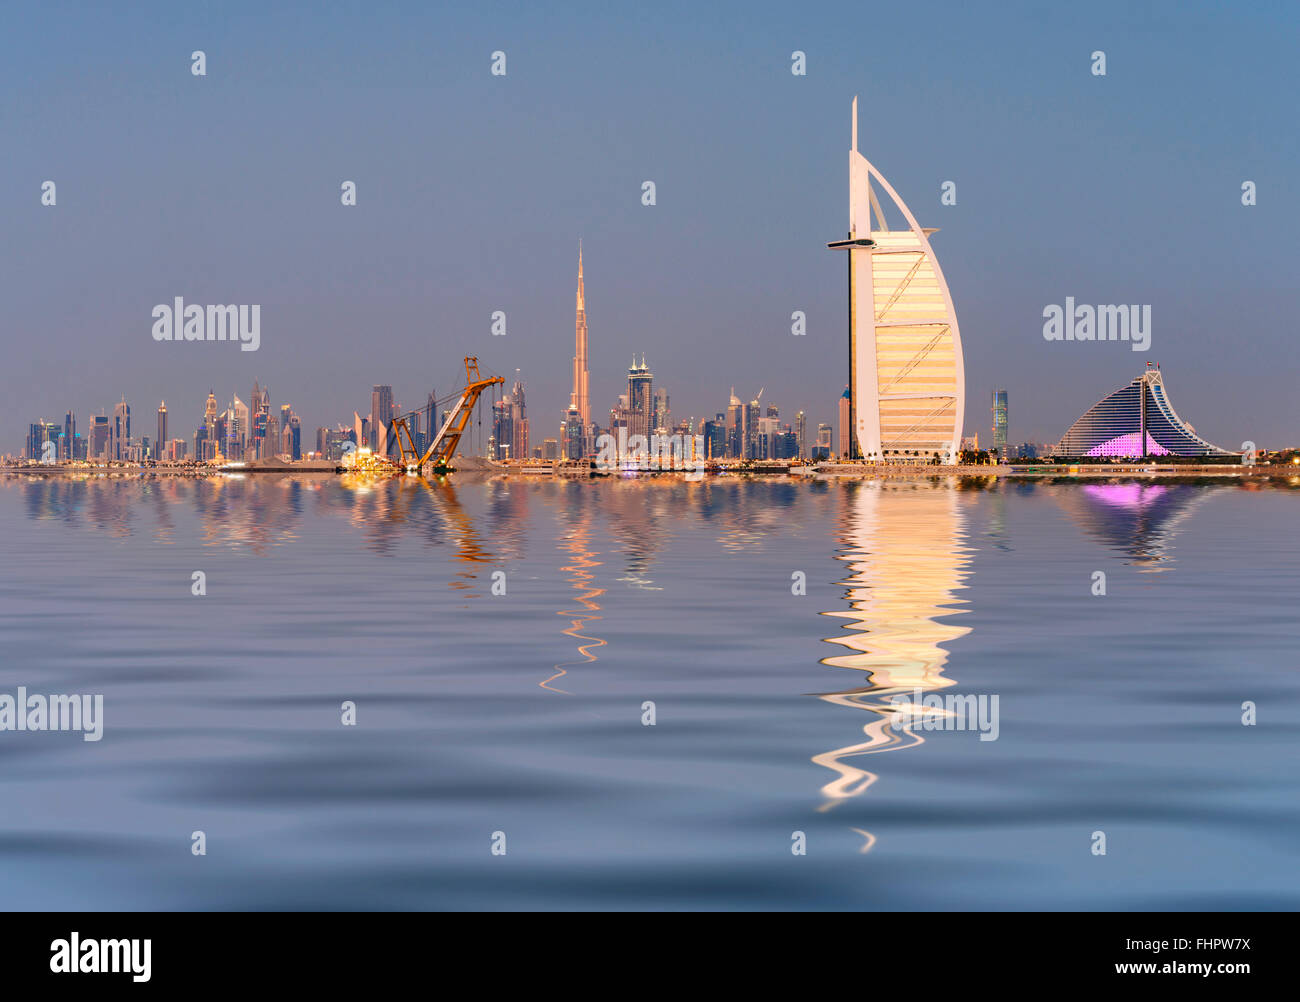 Toits de Dubaï Waterfront avec Burj Al Arab en Émirats Arabes Unis Photo Stock